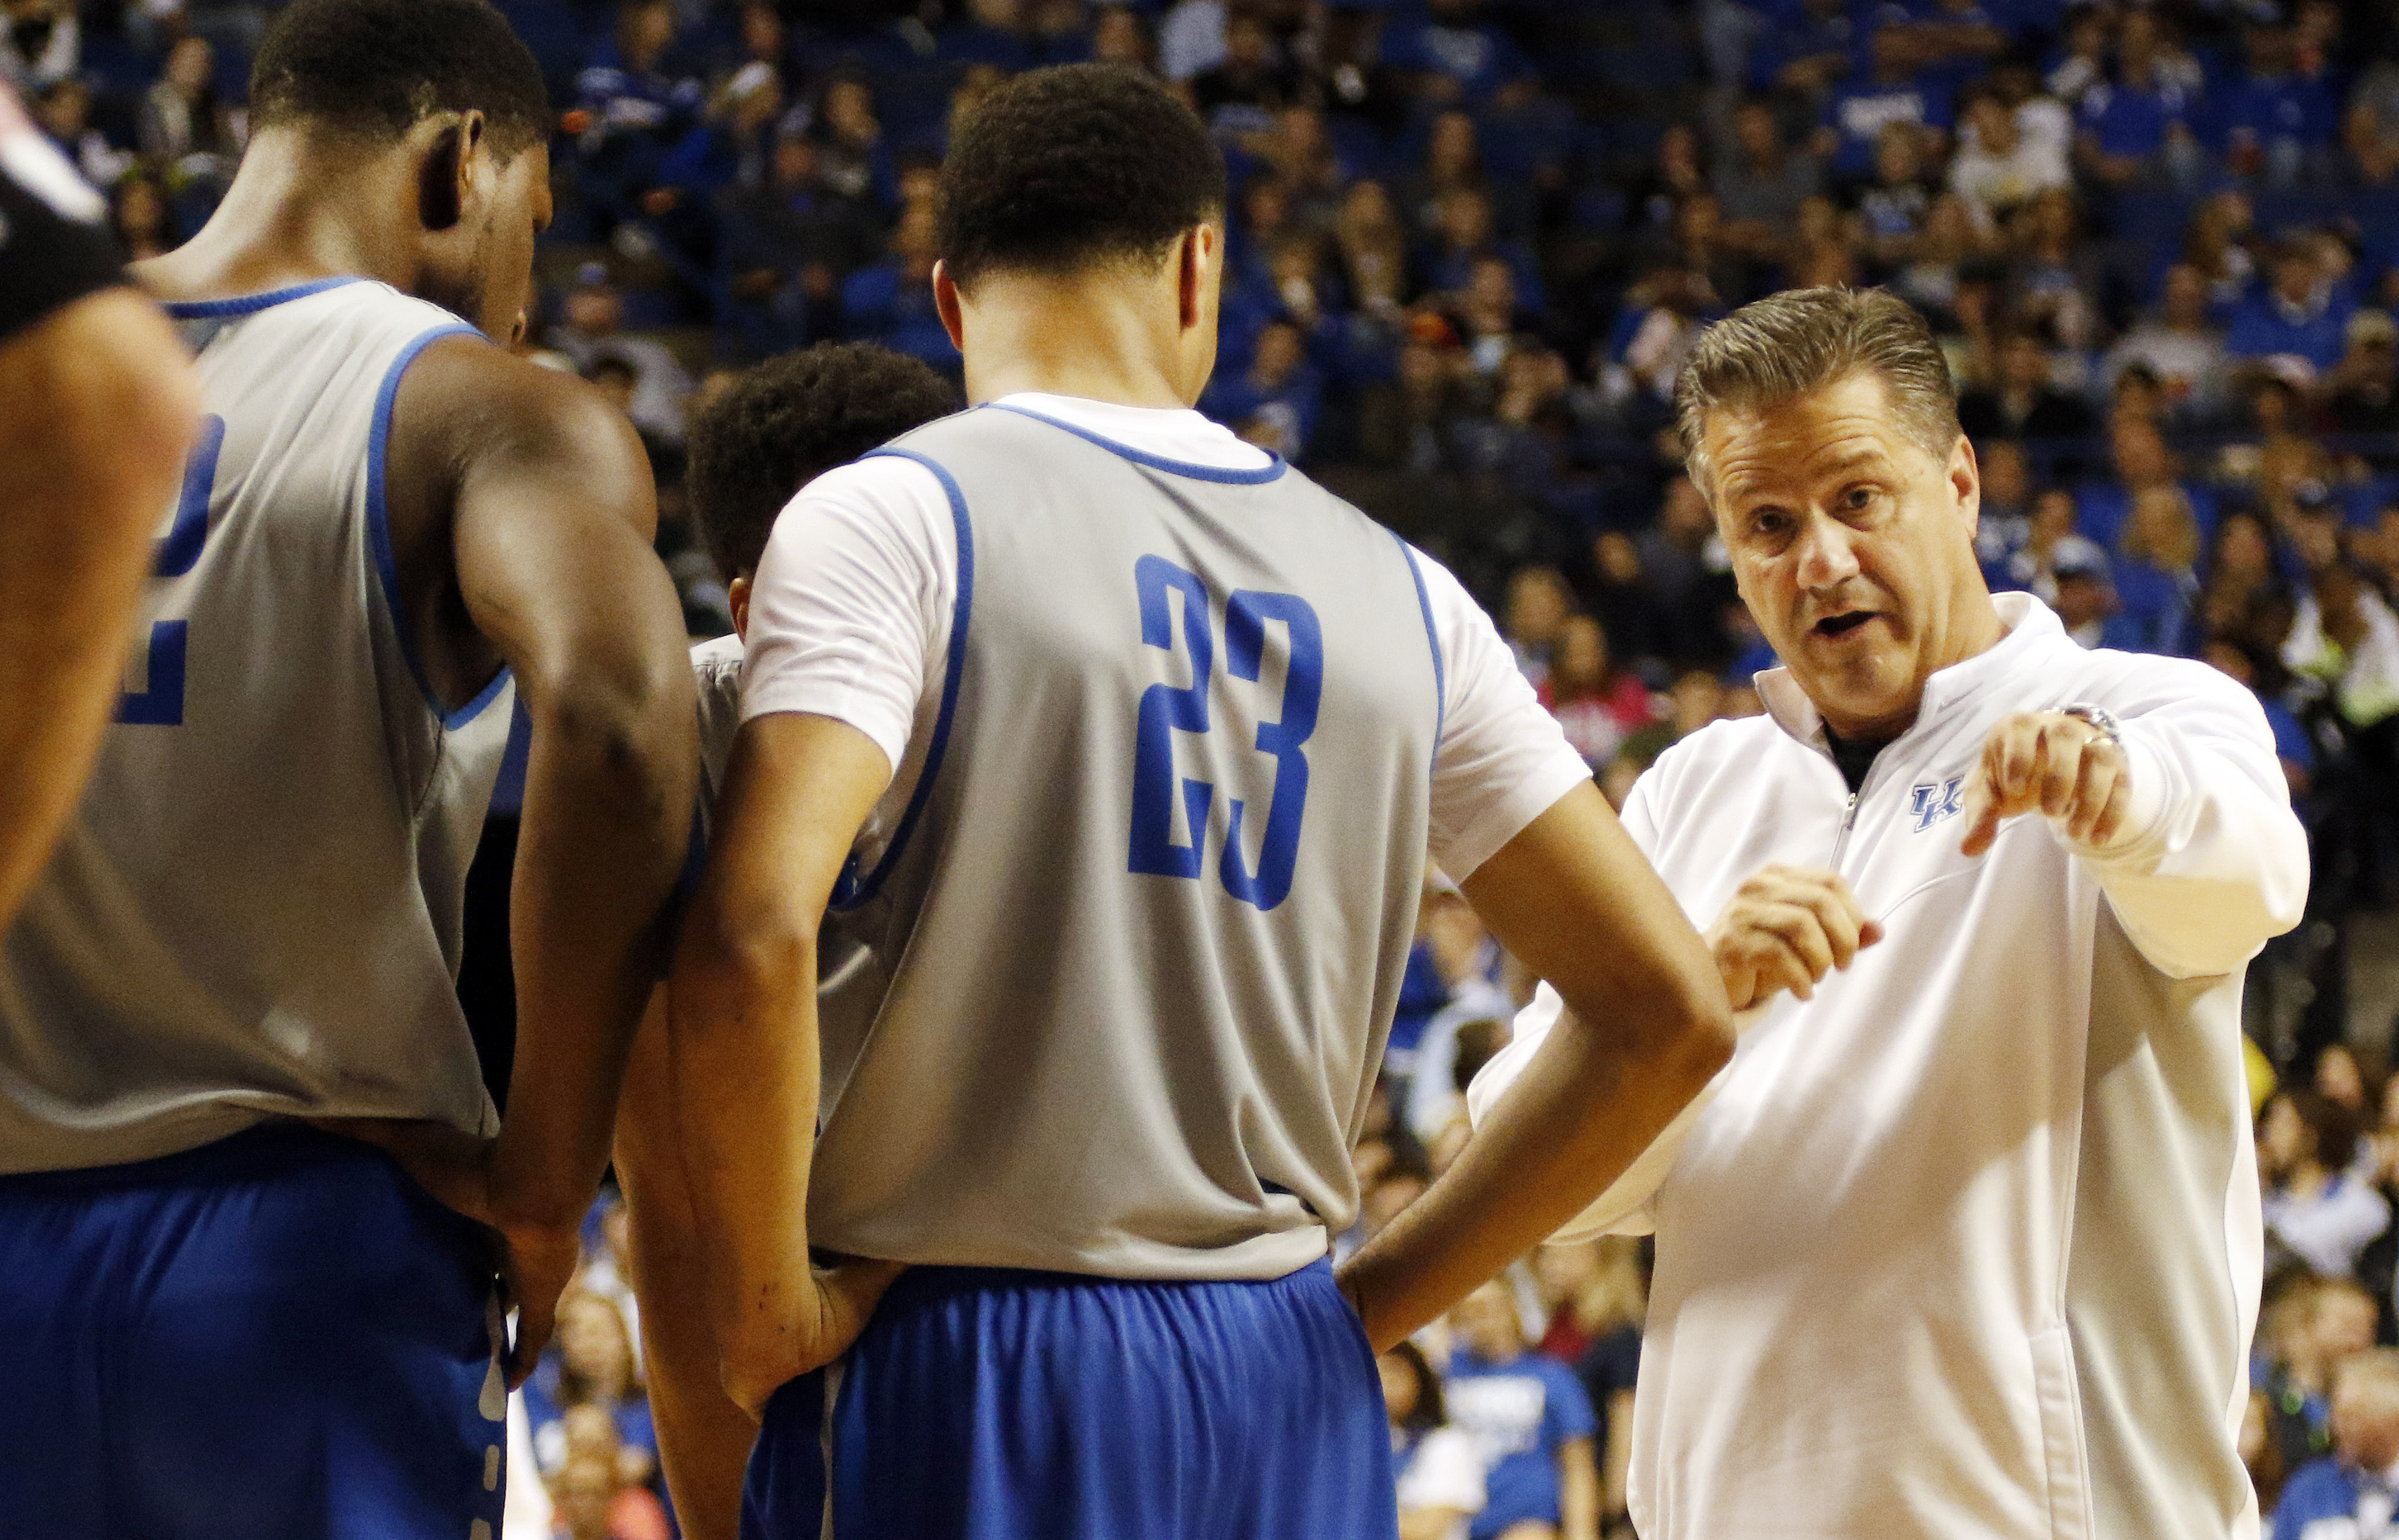 Kentucky head coach John Calipari, right, instructs the White Squad's Alex Poythress, left, and Jamal Murray (23) during a Kentucky NCAA college basketball scrimmage, Tuesday, Oct. 27, 2015, in Lexington, Ky. (AP Photo/James Crisp)